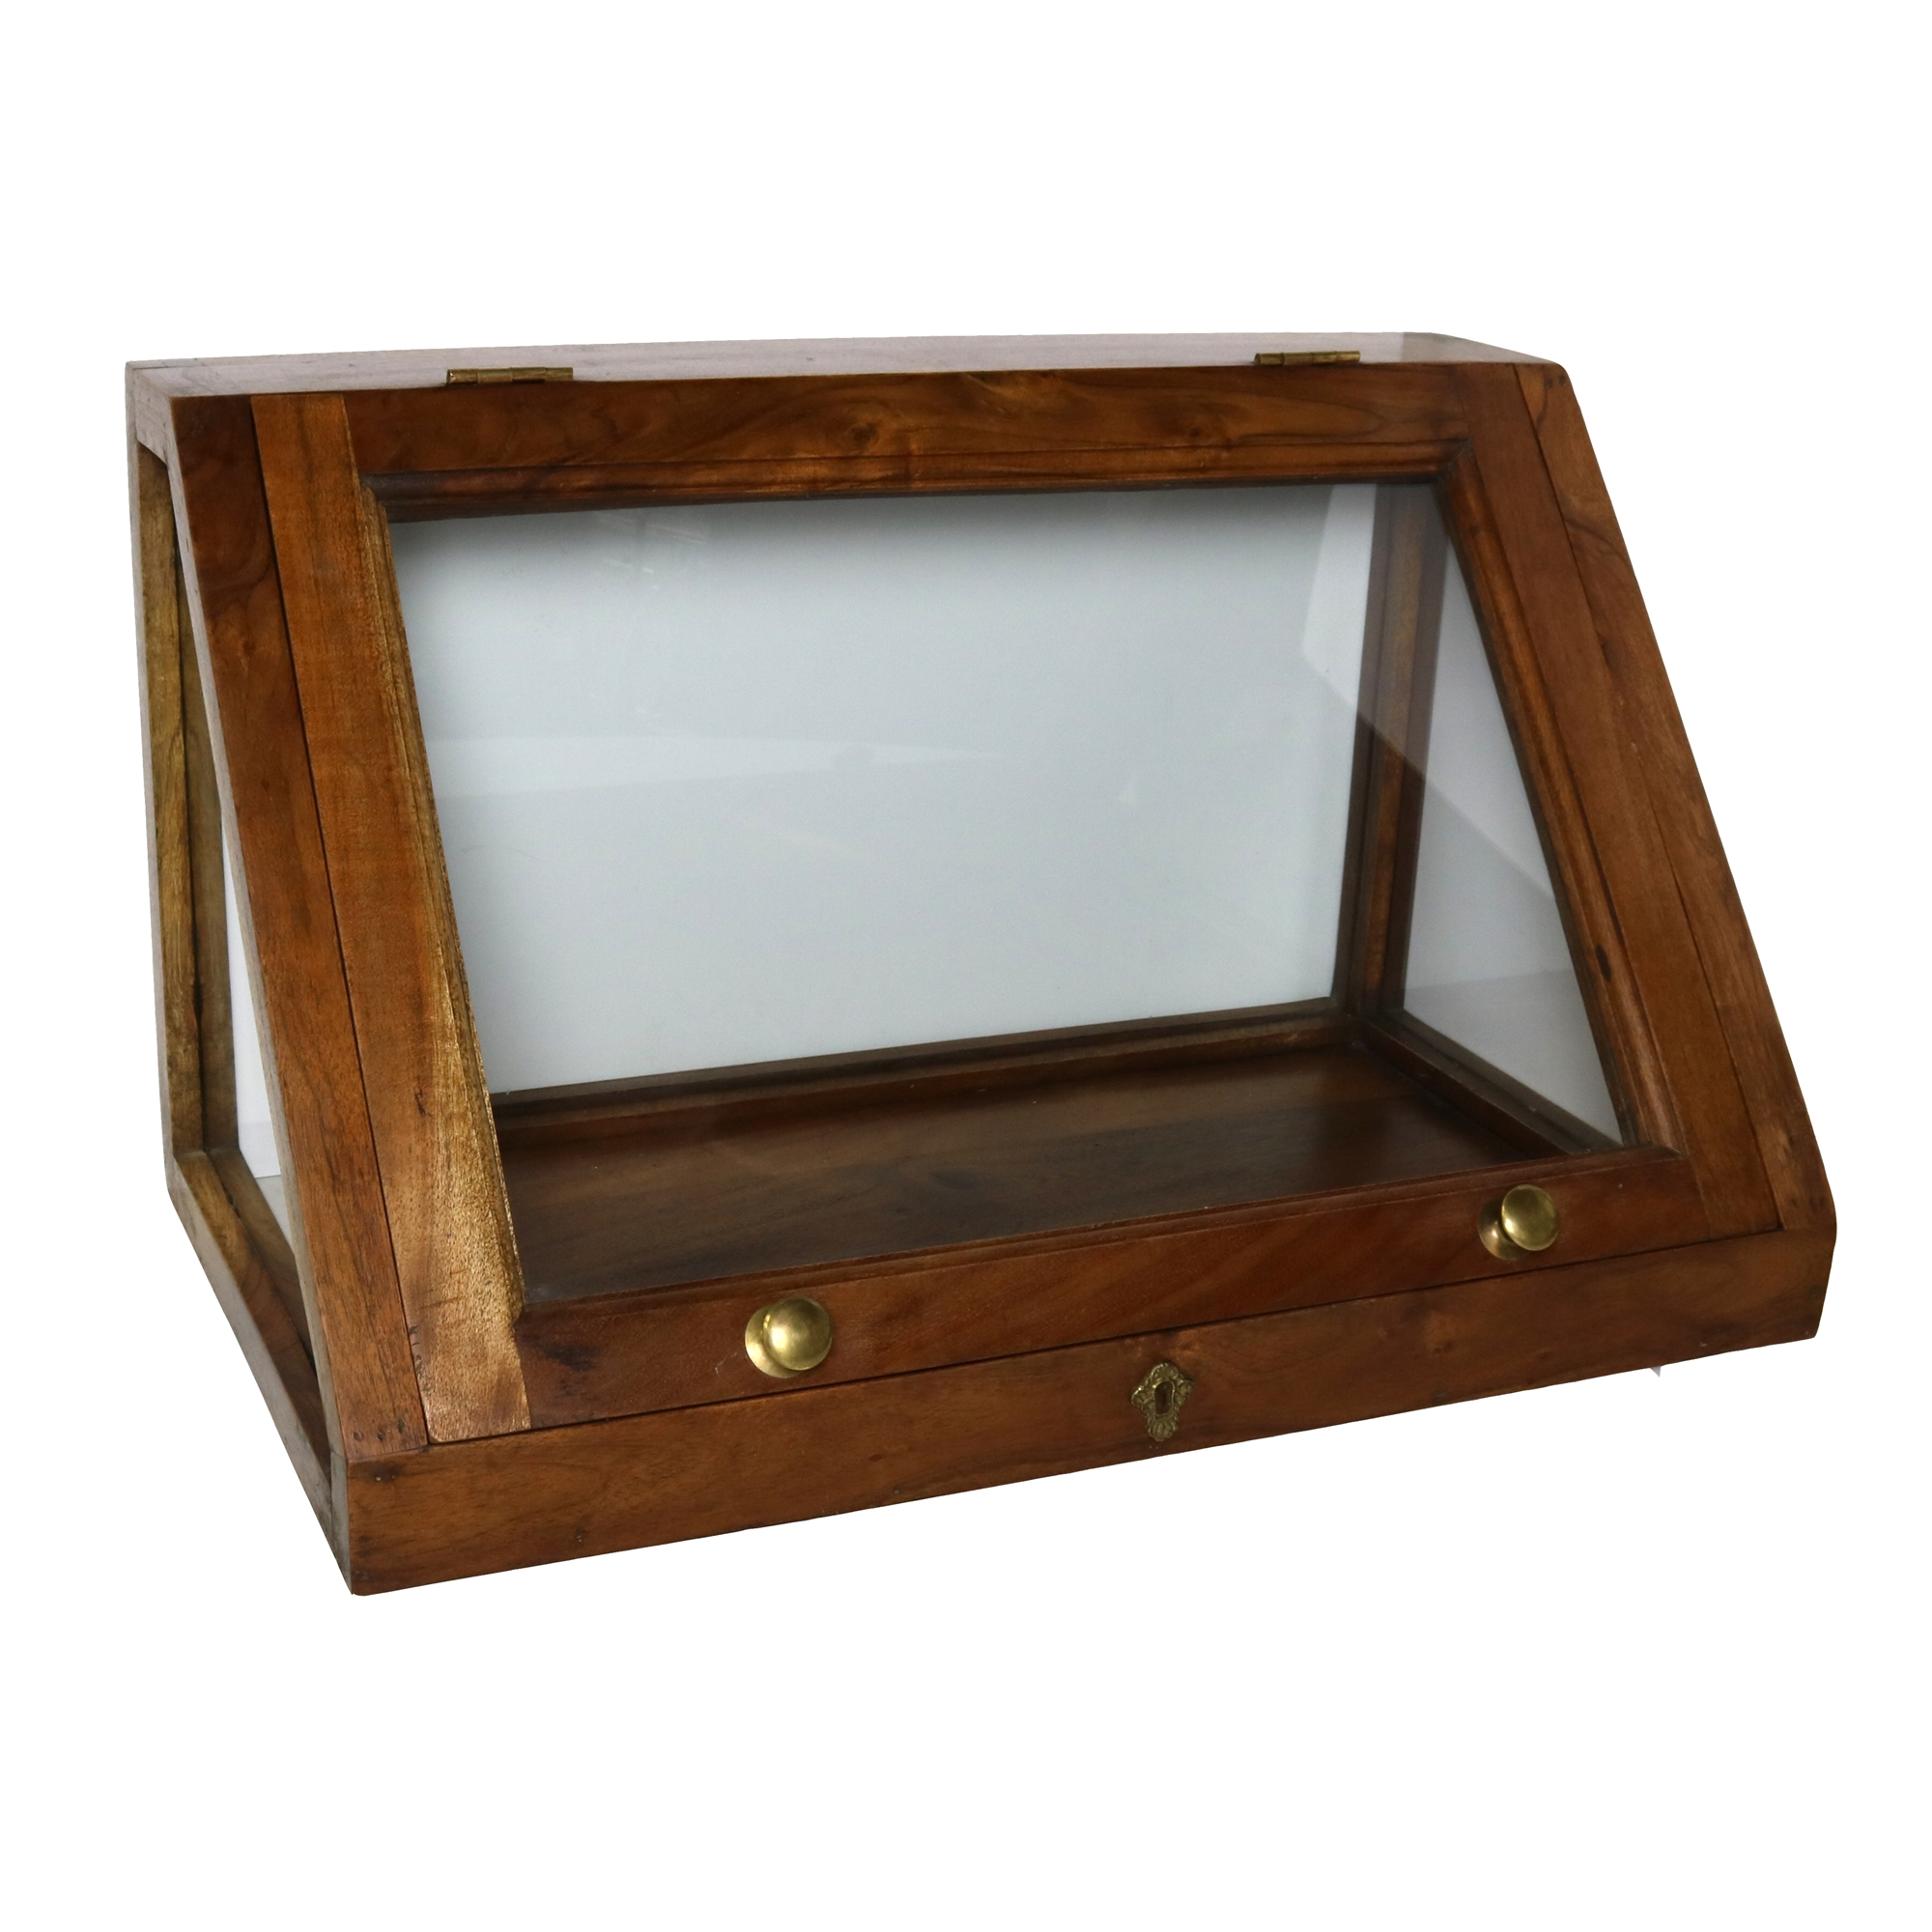 Display Case - Pullman Angled Display Box